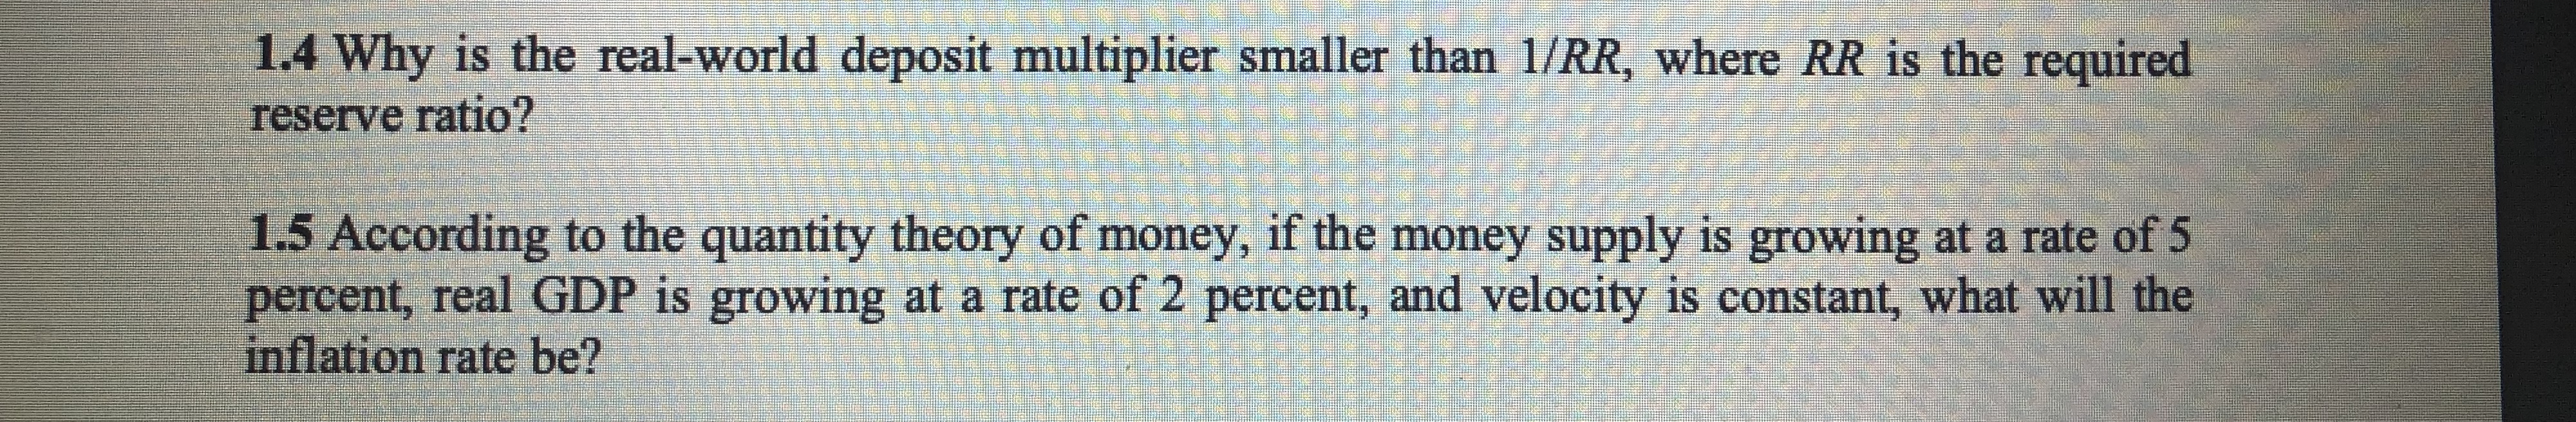 1.4 Why is the real-world deposit multiplier smaller than 1/RR, where RR is the required reserve ratio? 1.5 According to the quantity theory of money, if the money supply is growing at a rate of 5 percent, real GDP is growing at a rate of 2 percent, and velocity is constant, what will the inflation rate be?